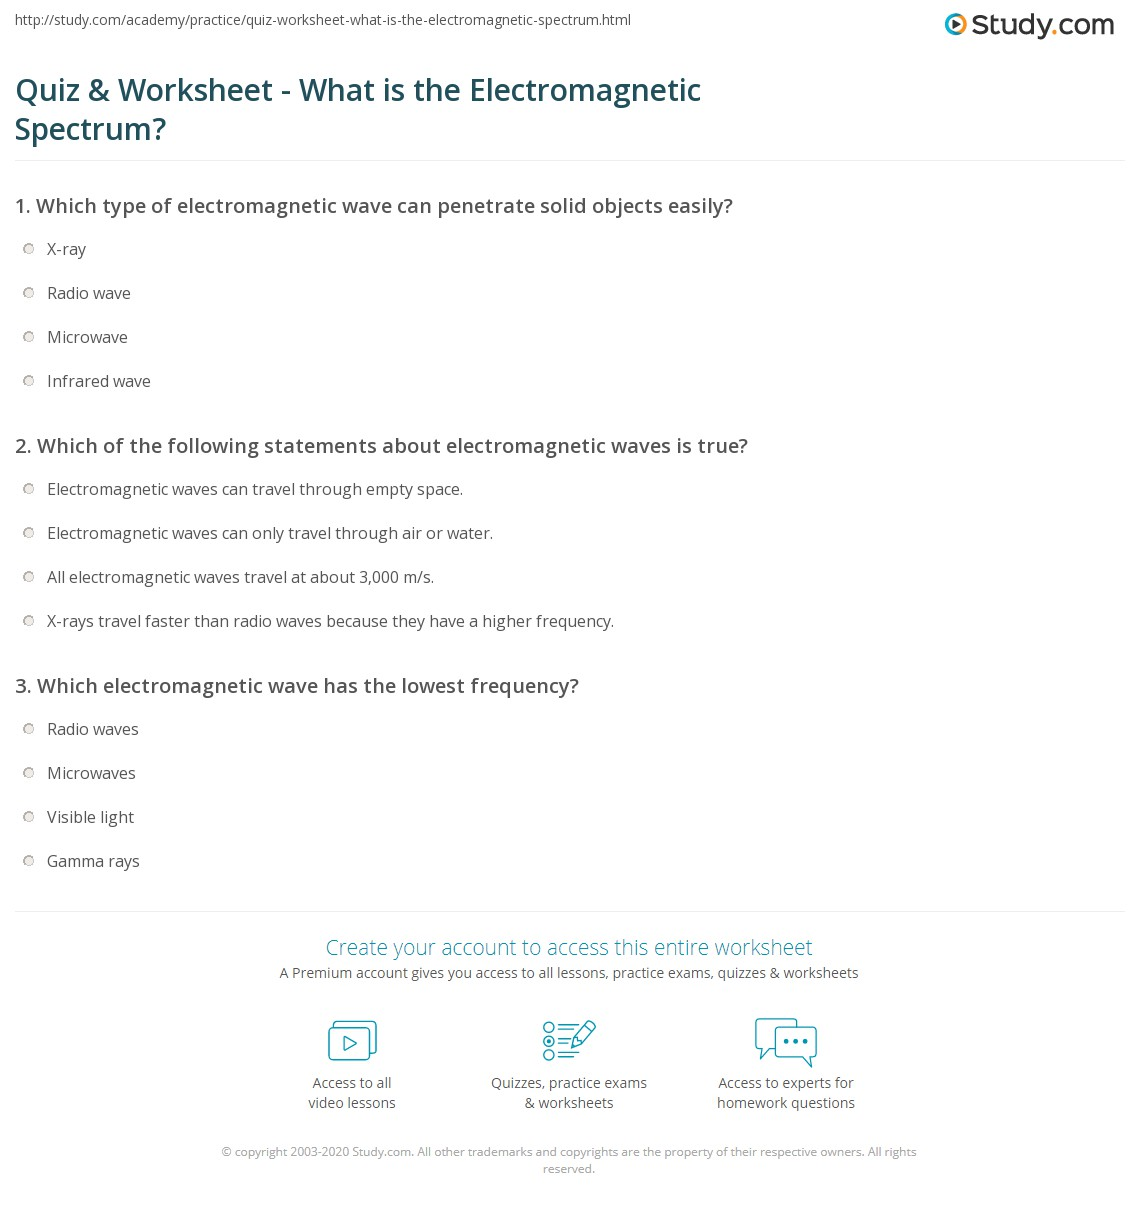 Quiz & Worksheet - What is the Electromagnetic Spectrum? | Study.com